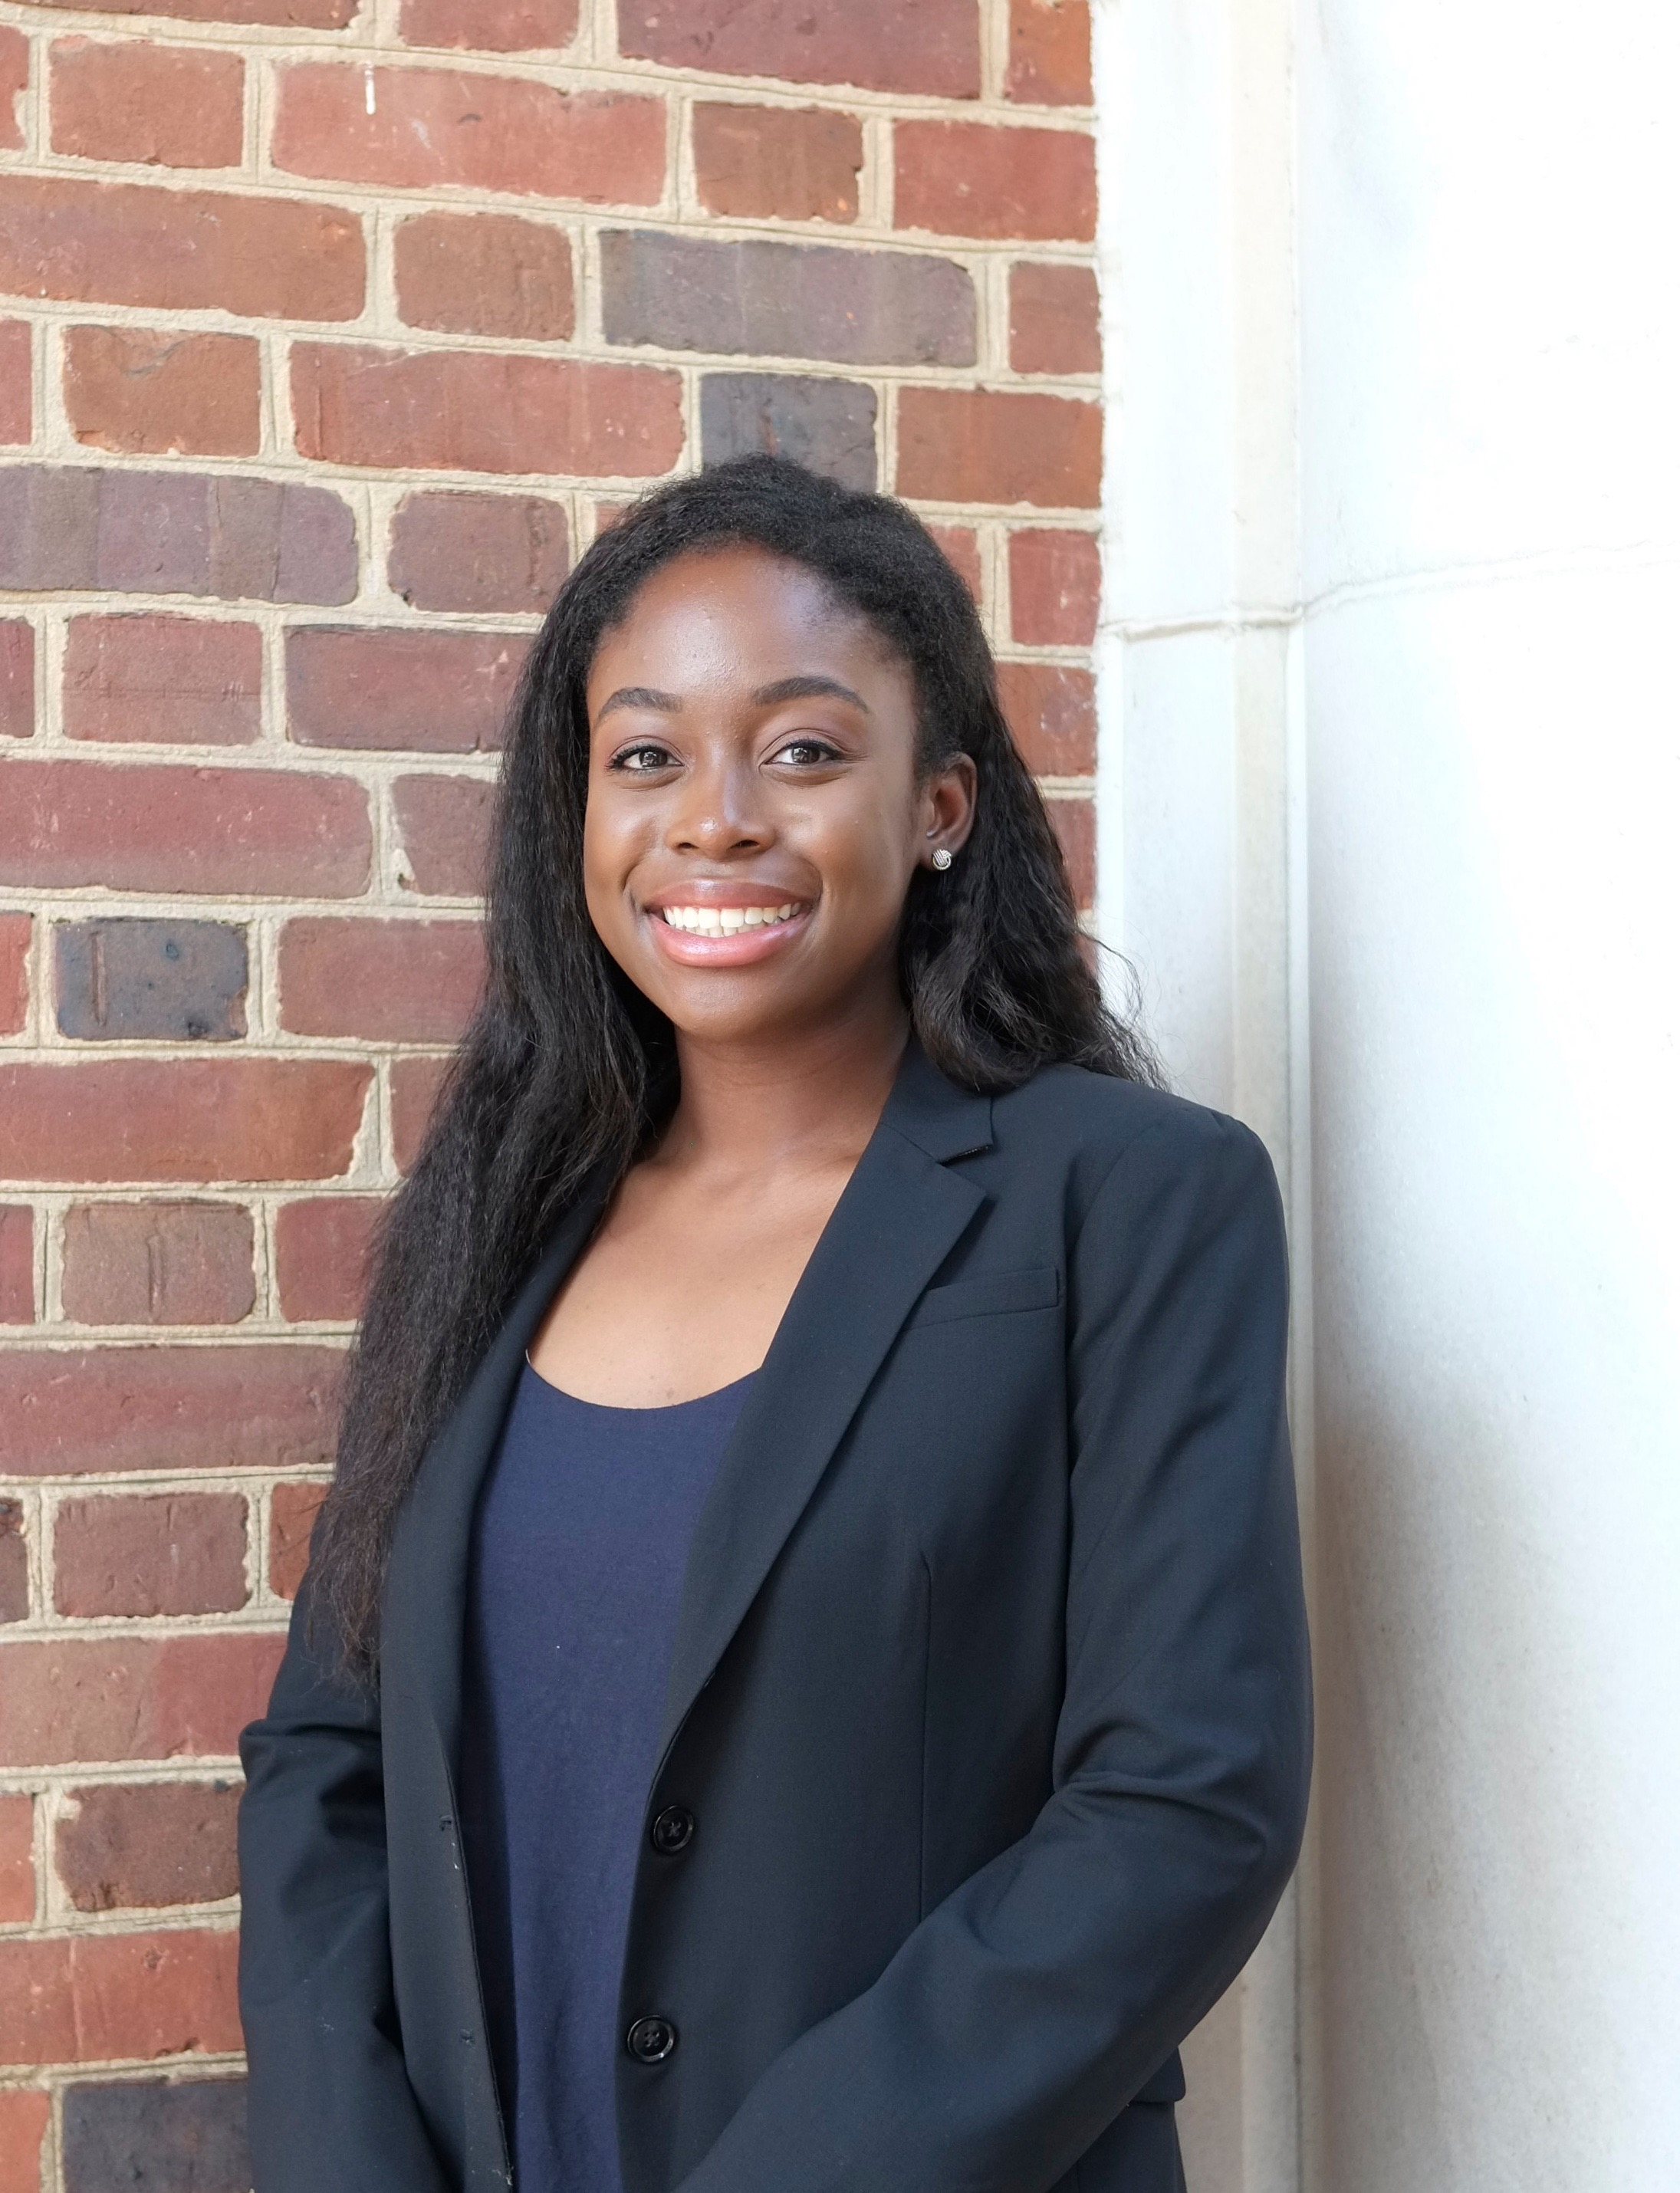 Corporate Development: Lindsay Ofori - Lindsay Ofori is a double major in International Studies and French with a minor in Business in the class of 2021. Within Women in Business, she serves as a Co-Corporate Development Chair on the exec board. Outside of Women in Business, she is involved with the International Studies Leadership Council, Blue Key Society, and the Alumni Student Ambassadors.